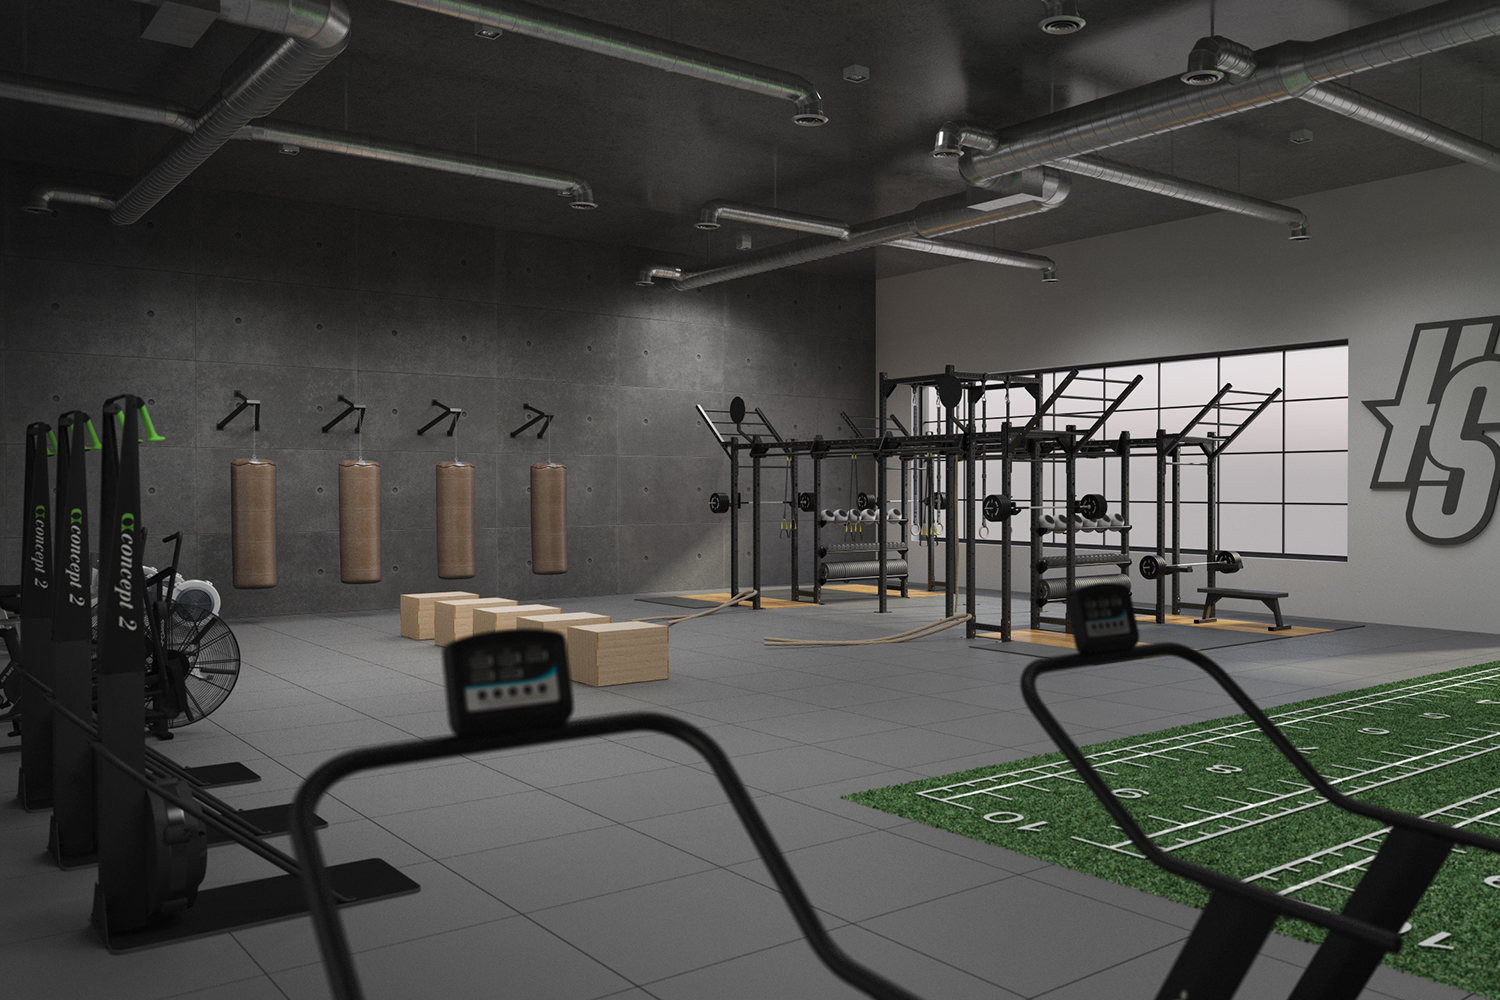 Performance Center - Gym flooring 1